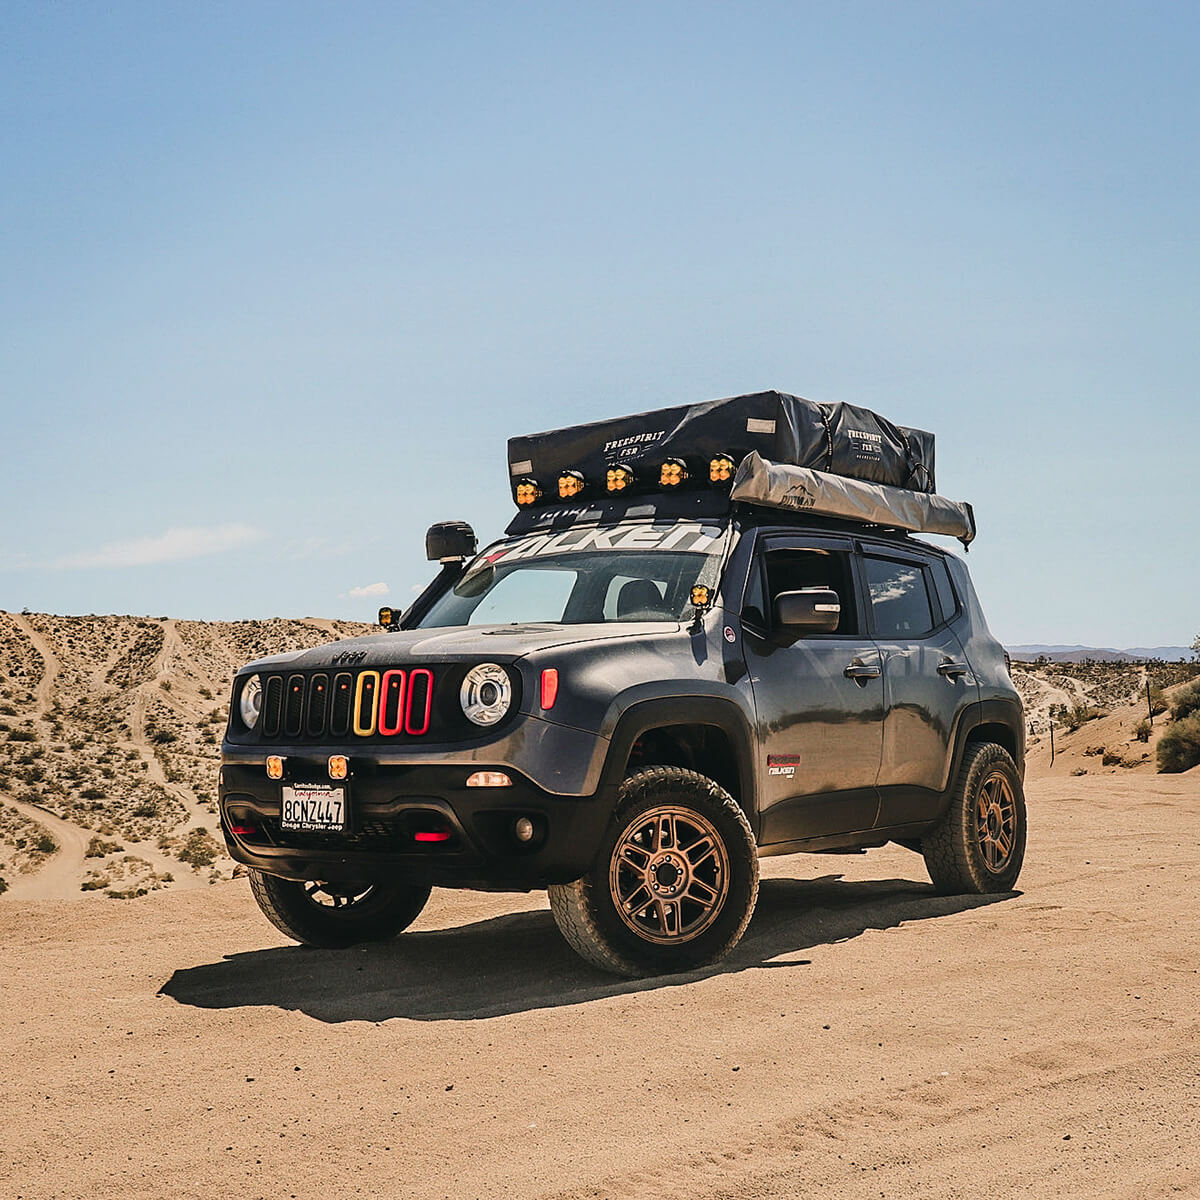 Jeep Renegade overland off-road modifications